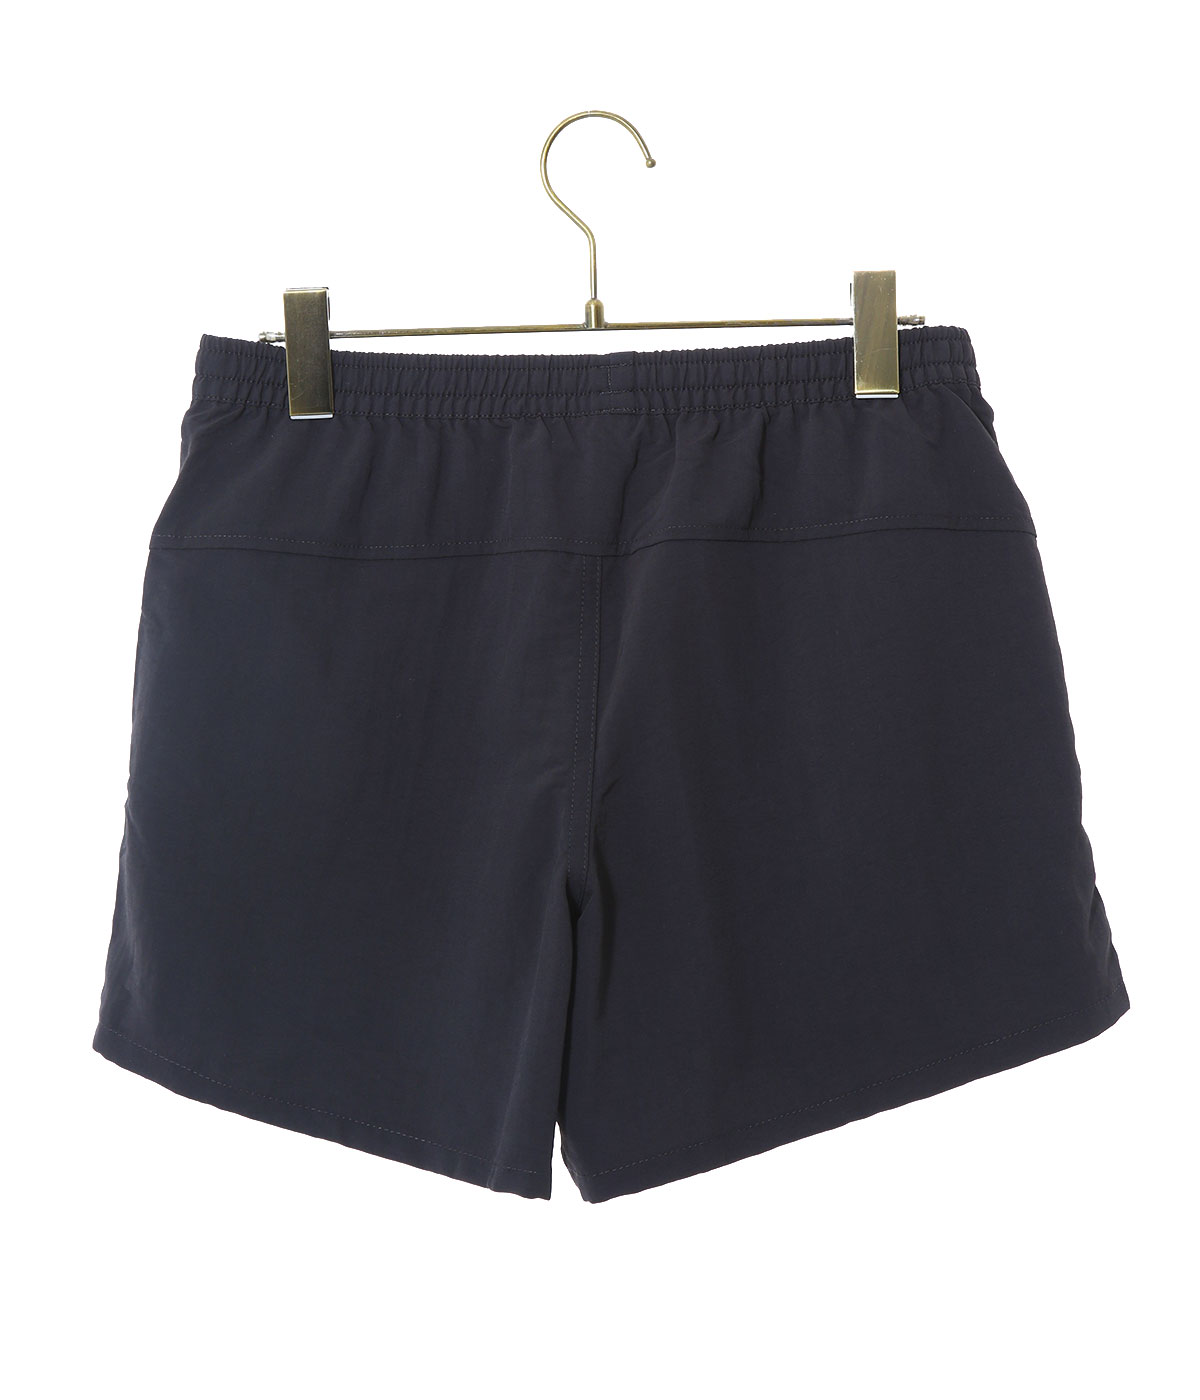 【レディース】W's Baggies Shorts